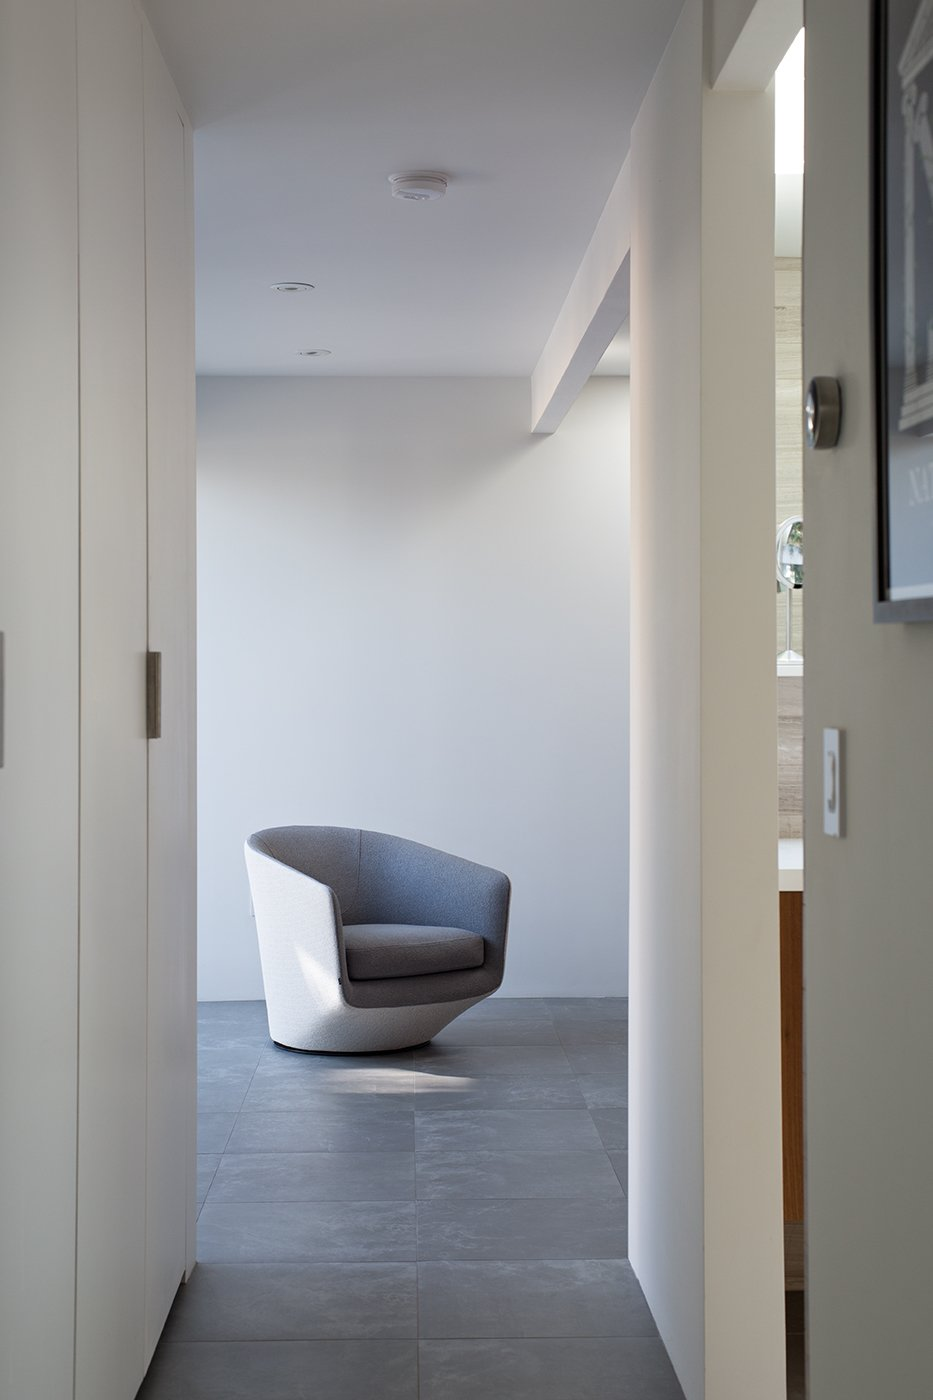 Hallway and Porcelain Tile Floor The floors are covered in two-foot square Nextra Piombo tiles by Monocibec. A U-Turn chair designed by Niels Bendtsen echoes the crisp, sculptural qualities of the interior spaces.  Photo 5 of 8 in Indoor-Outdoor Home by a Midcentury Master Gets a Faithful Update